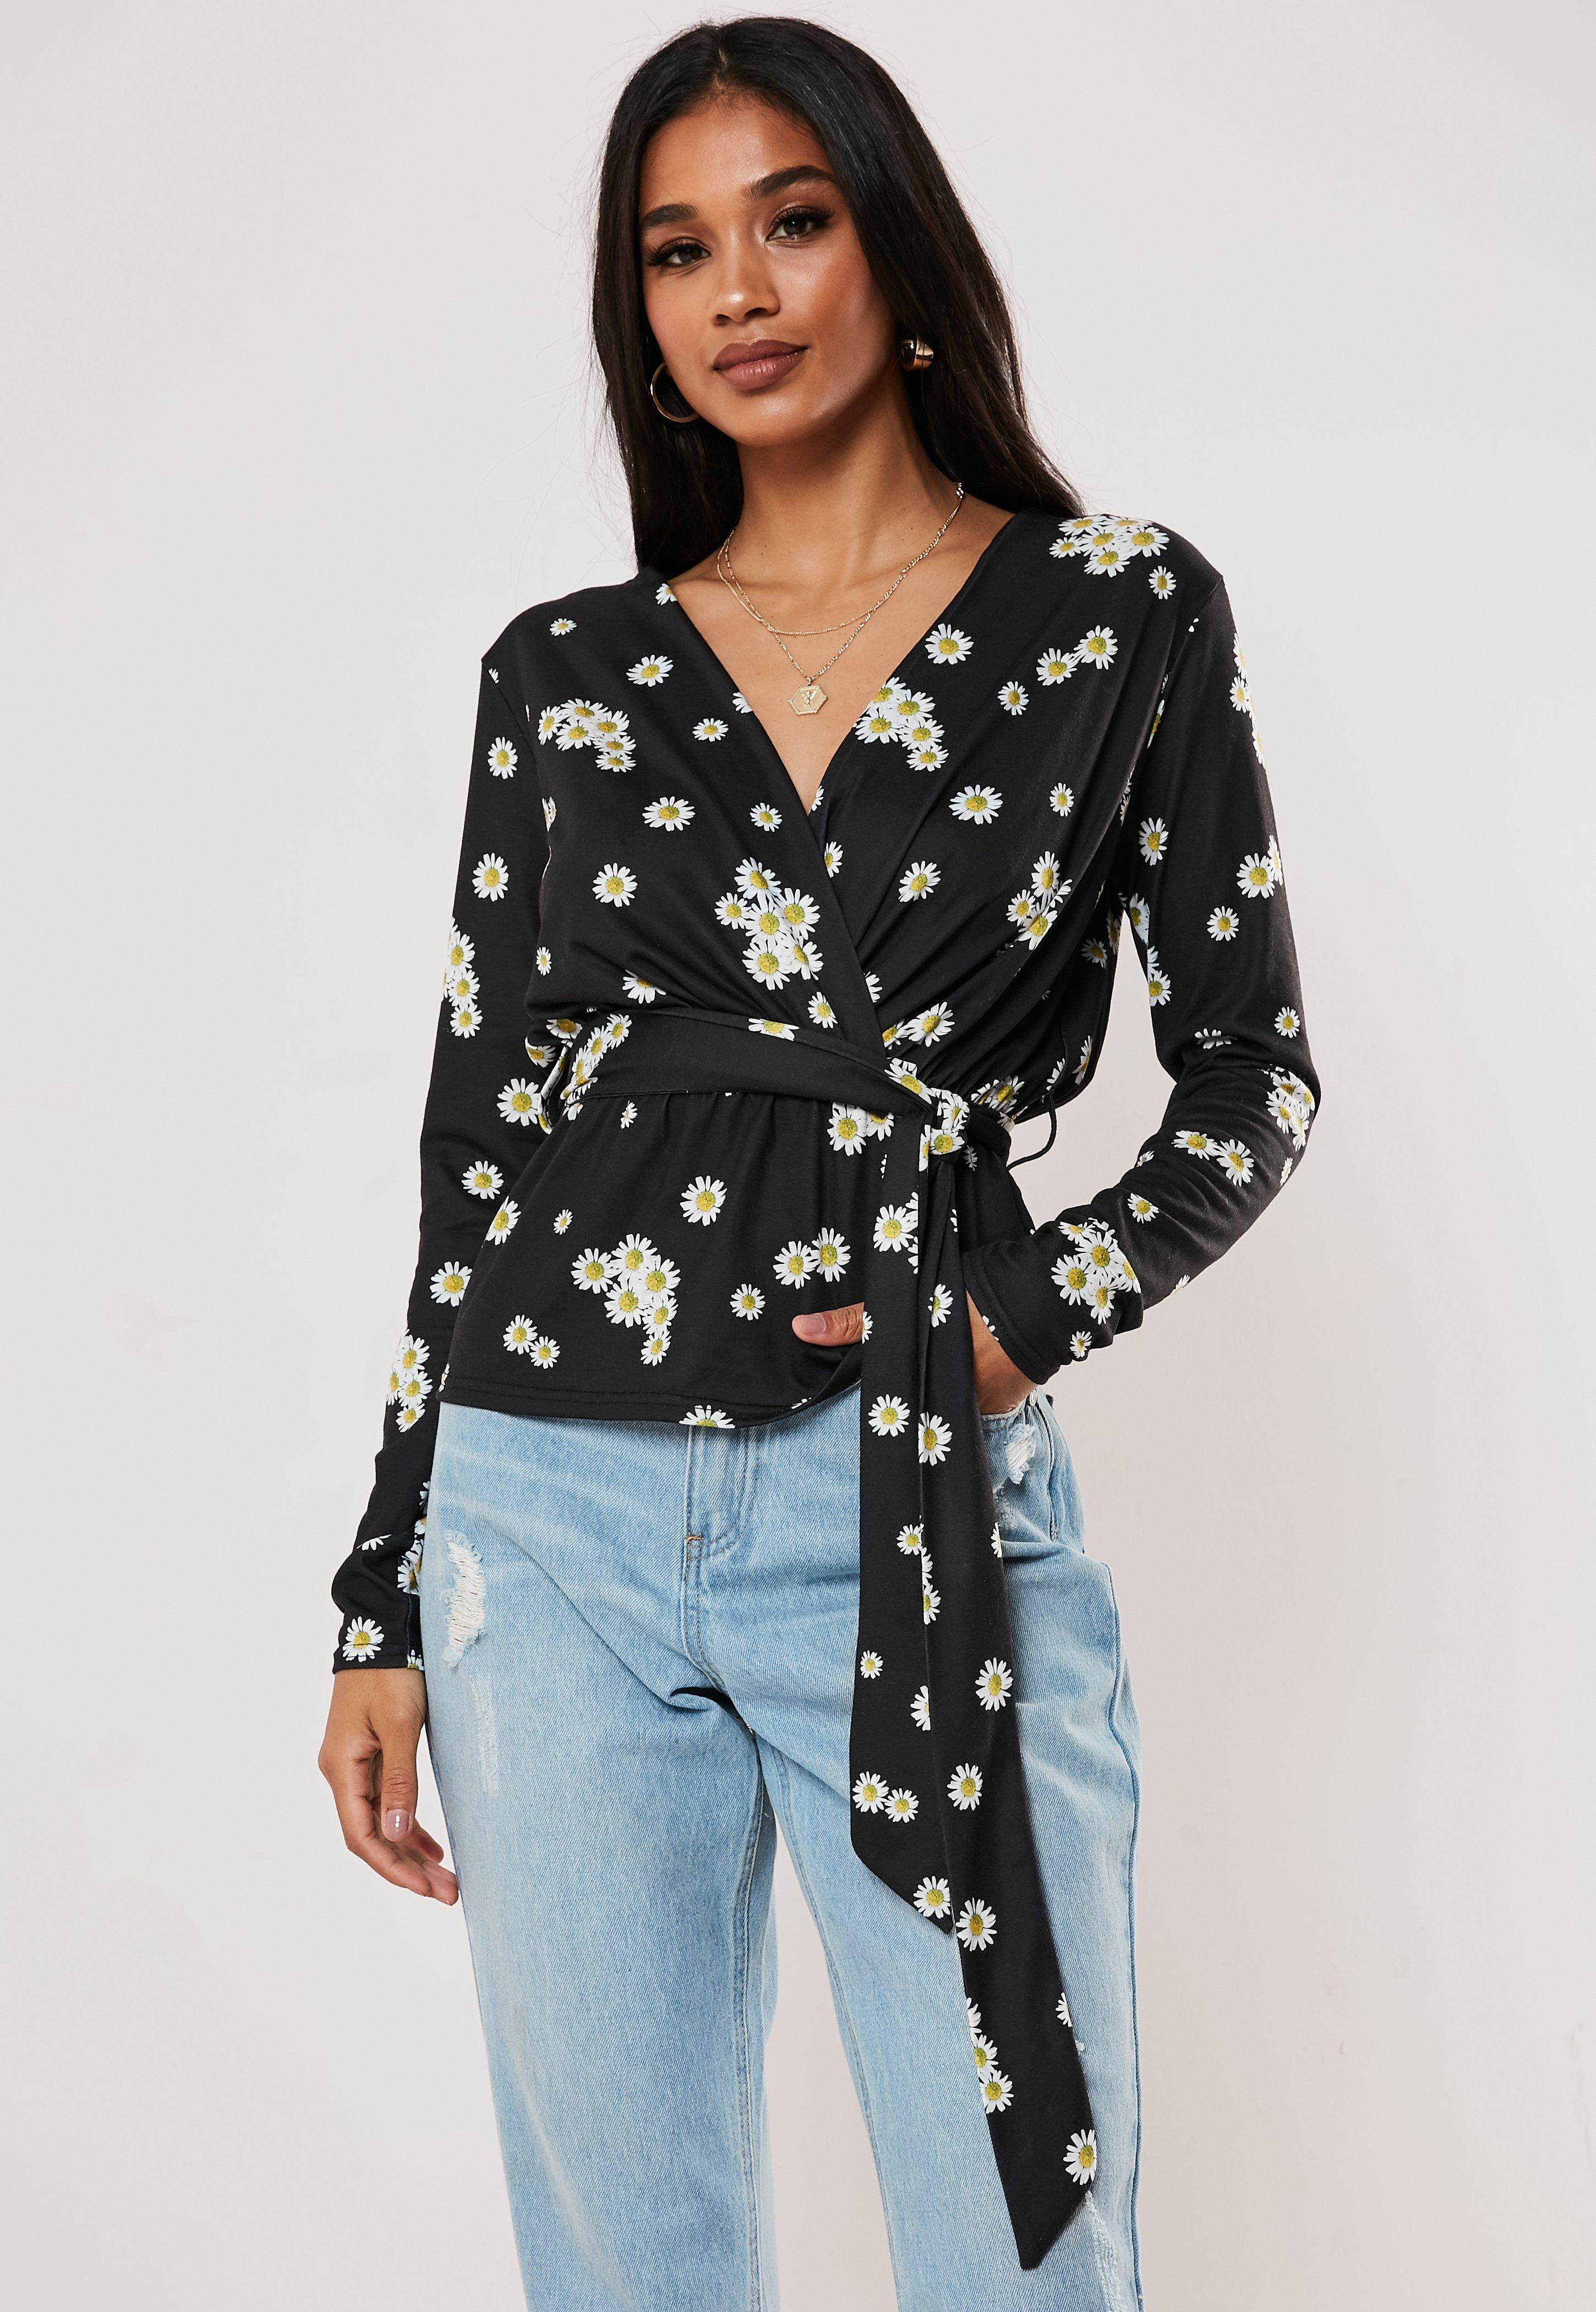 7497963cf3eb Blouses | Women's Floral, Chiffon & Satin Blouses - Missguided